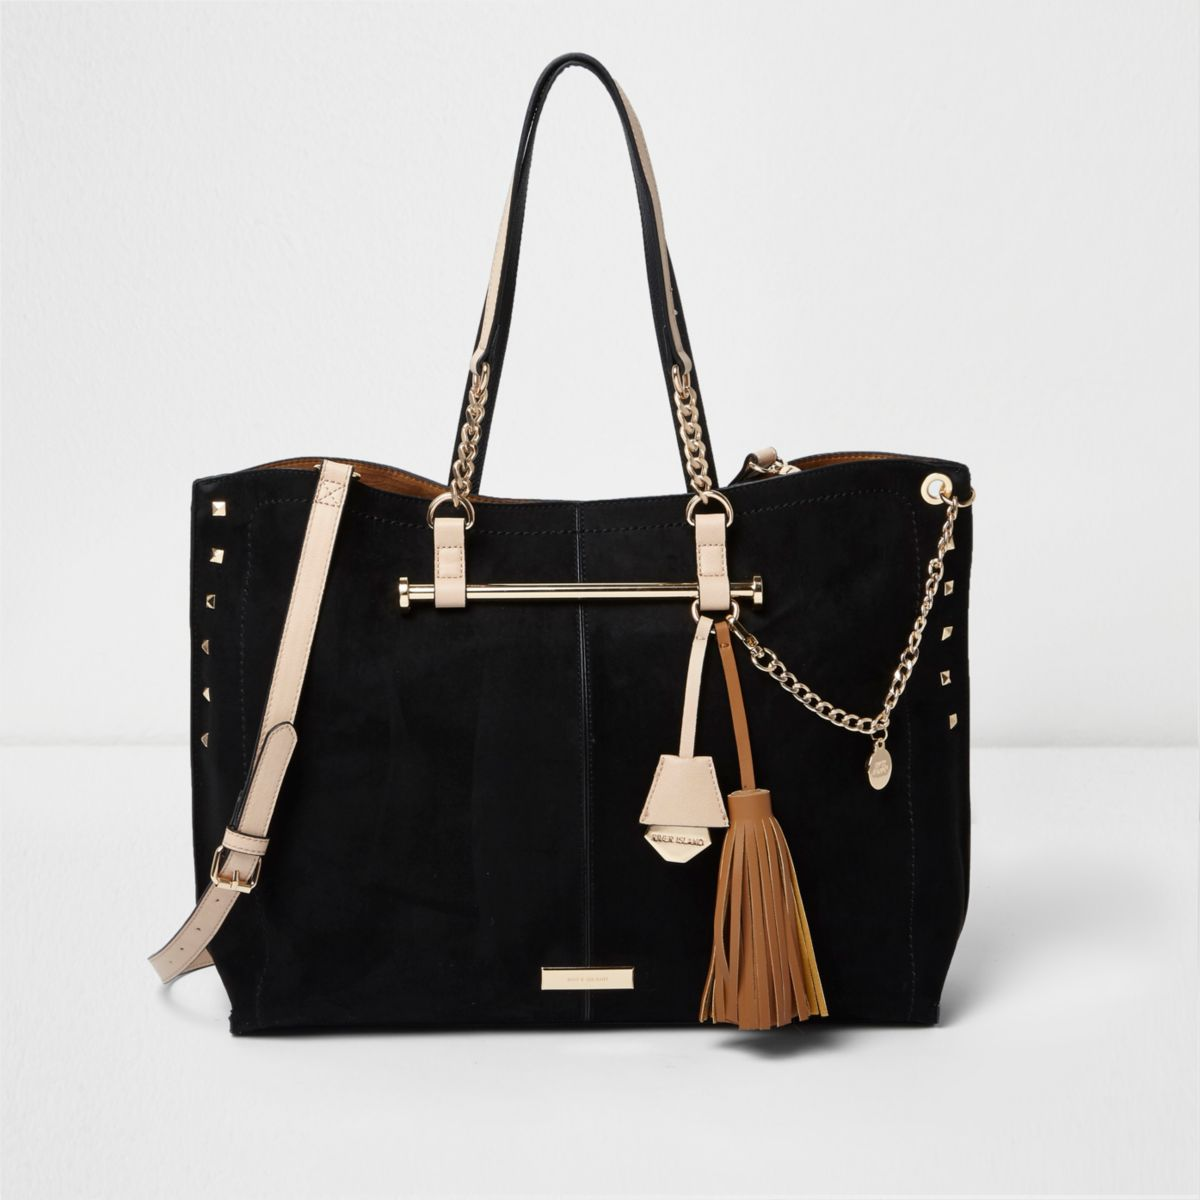 Black studded chain winged tote bag